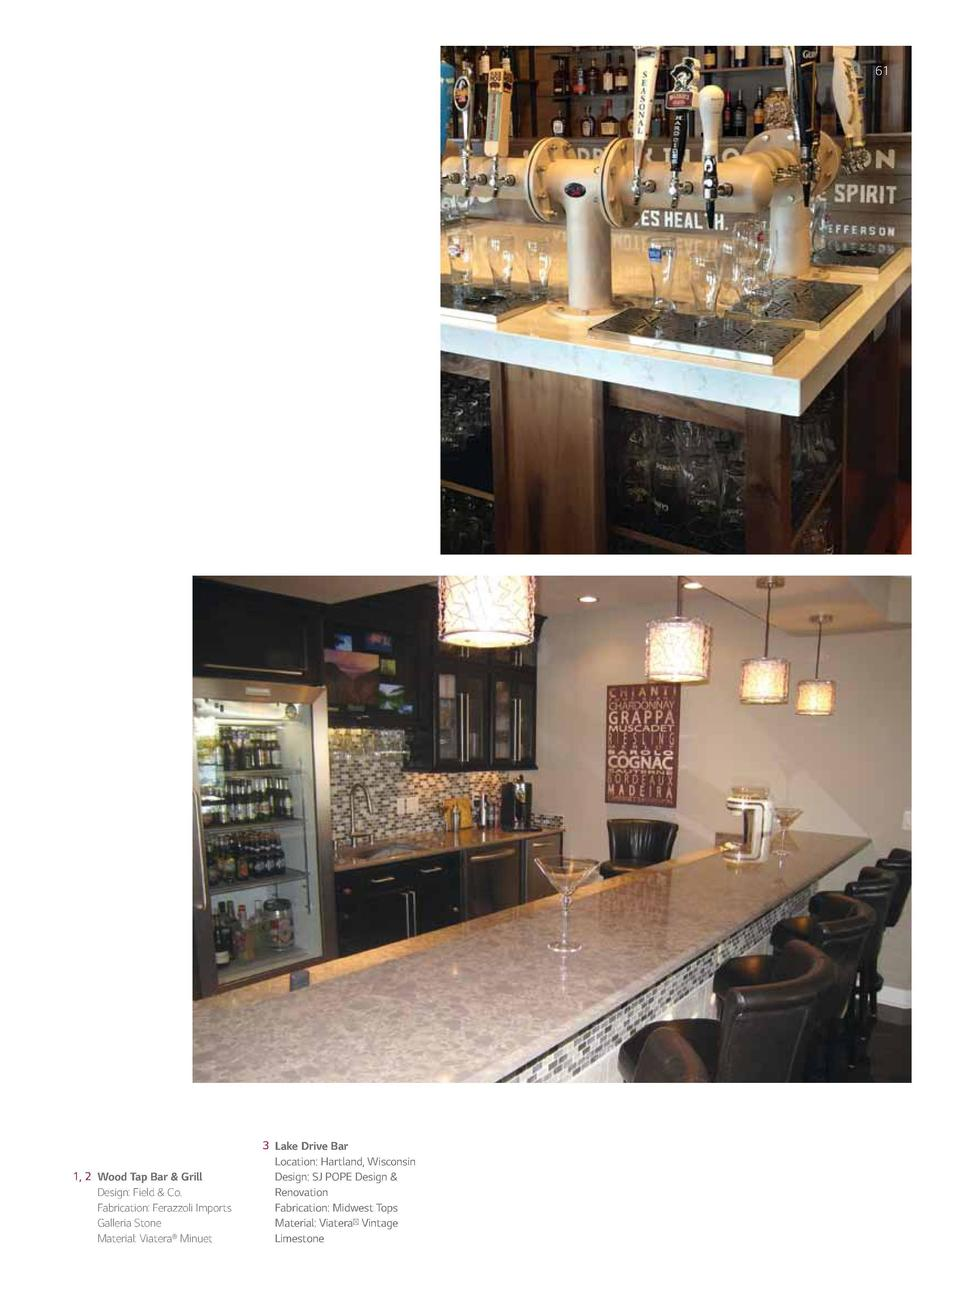 60  61  1  BAR TOP  2  3  1, 2 Wood Tap Bar   Grill Design  Field   Co. Fabrication  Ferazzoli Imports Galleria Stone Mate...